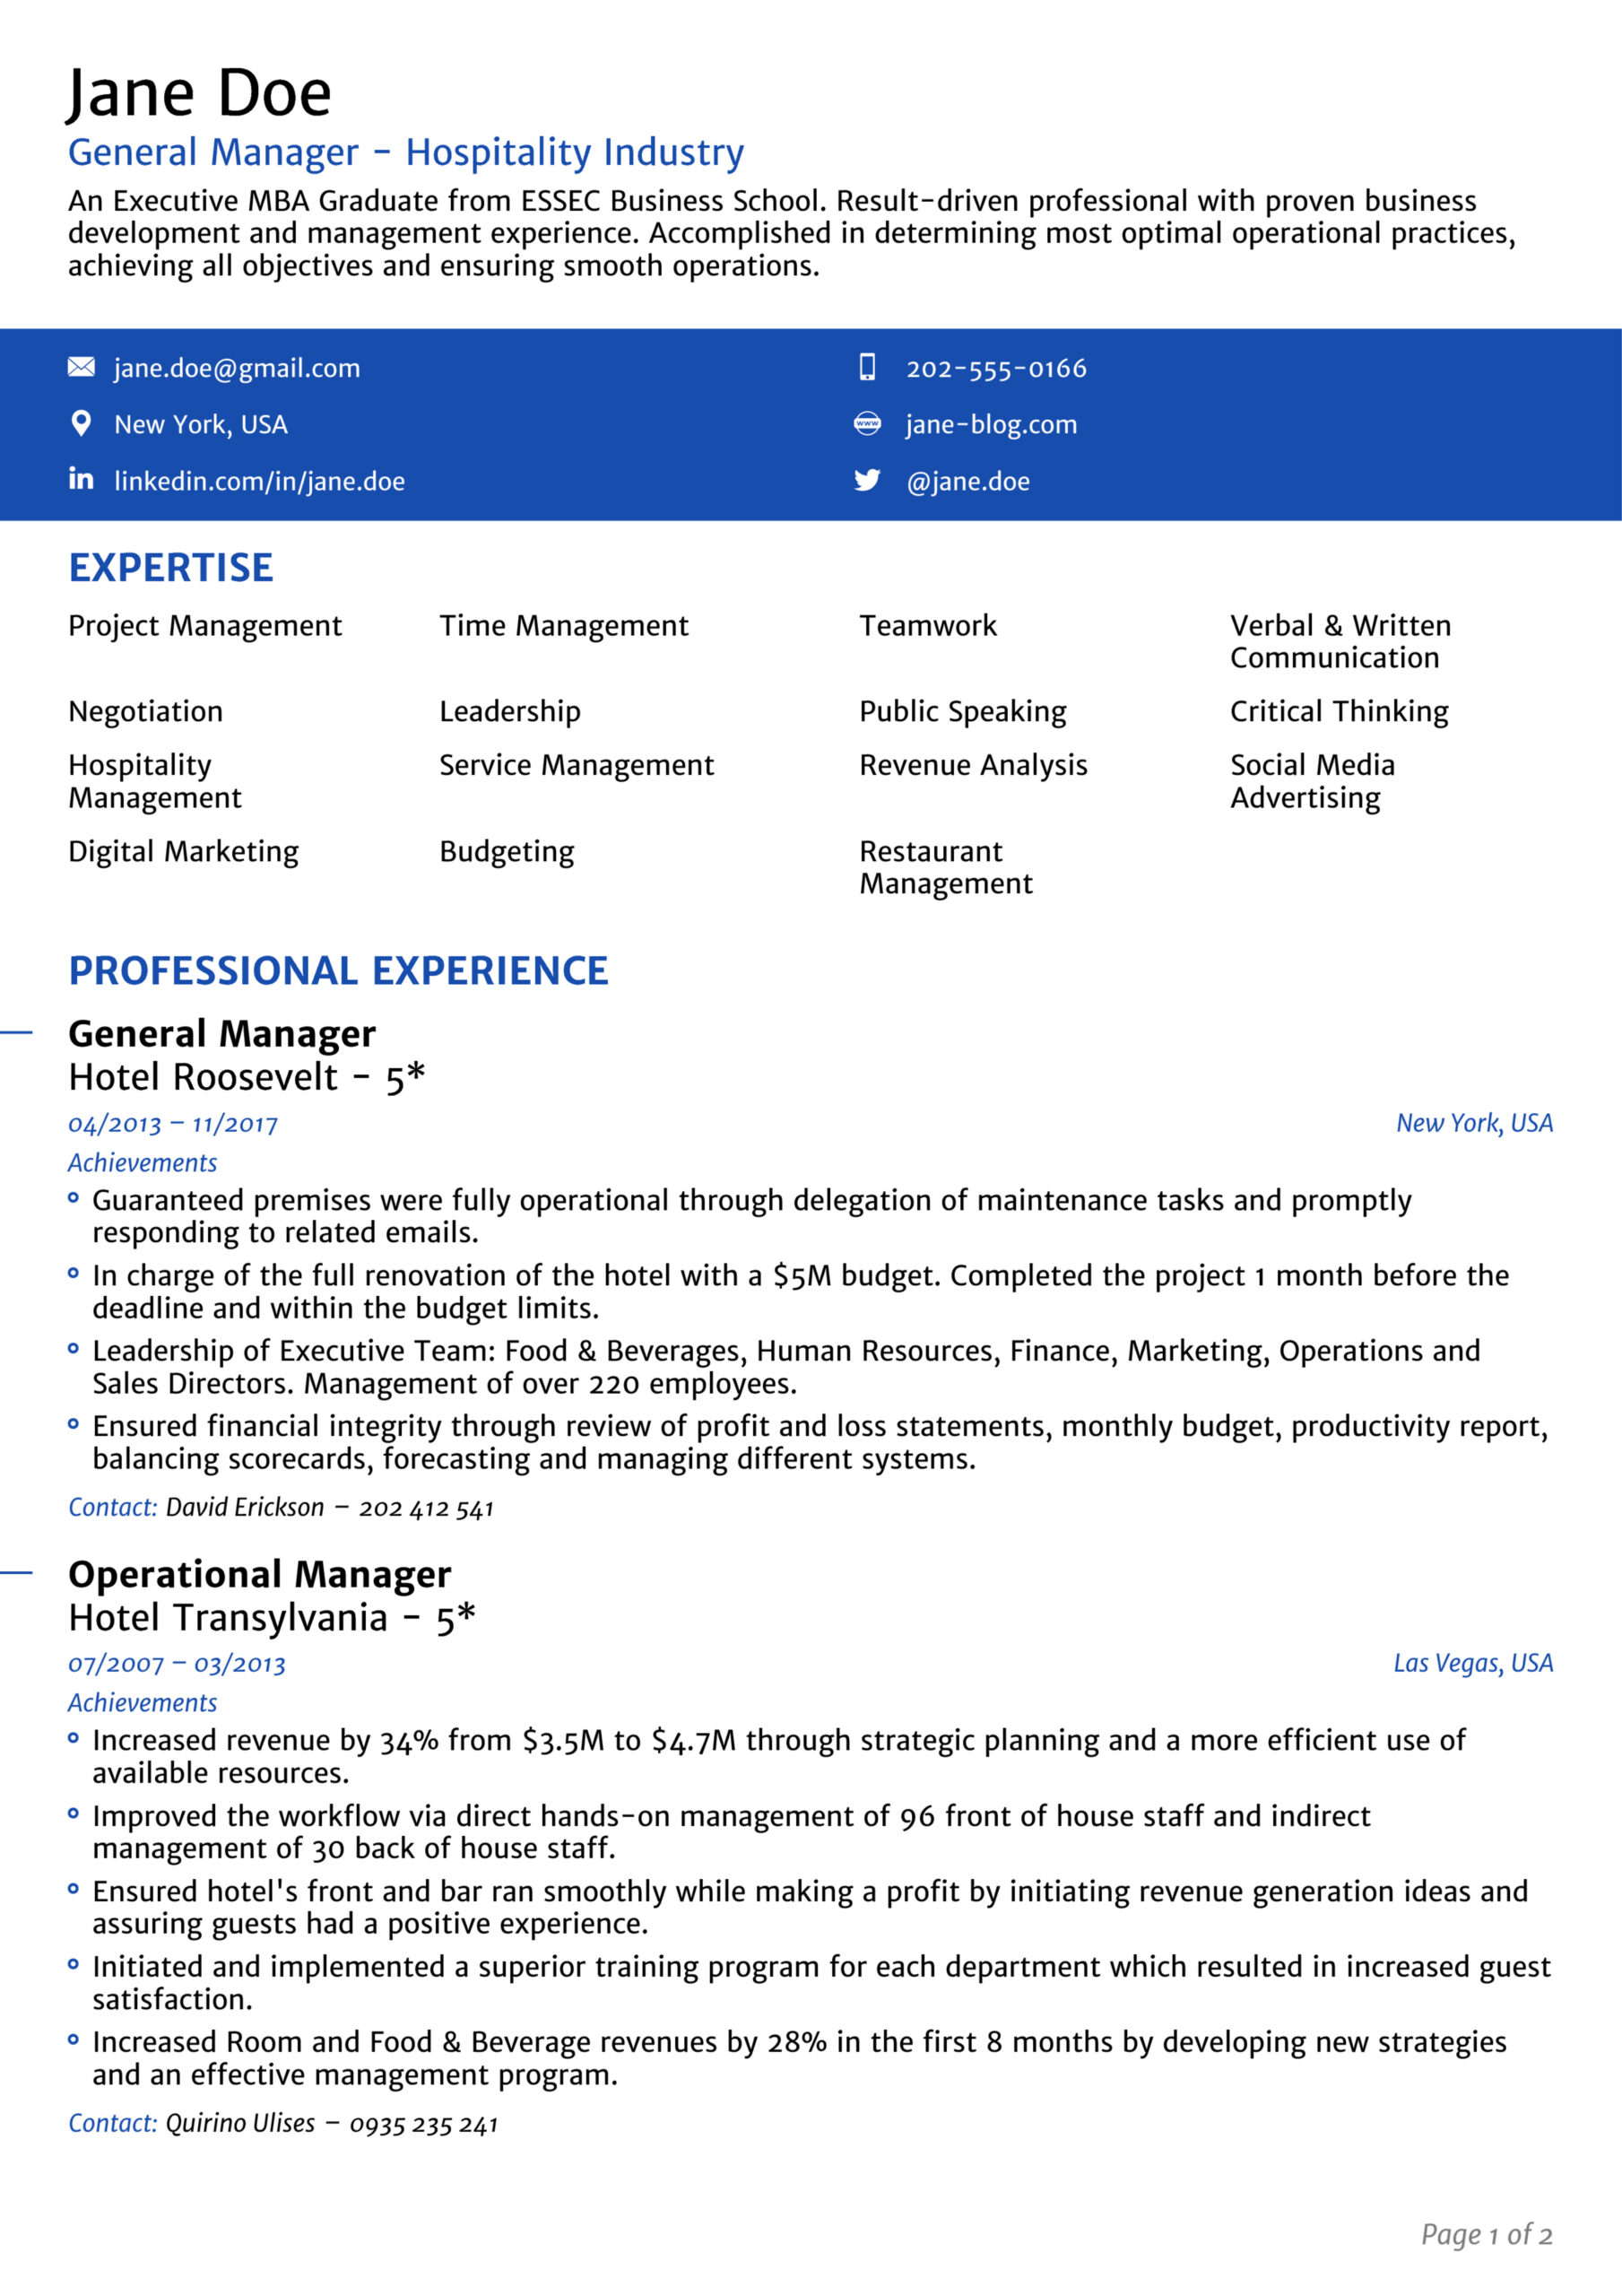 job titles examples for your resume search category on title in common mistakes format Resume Job Category On A Resume